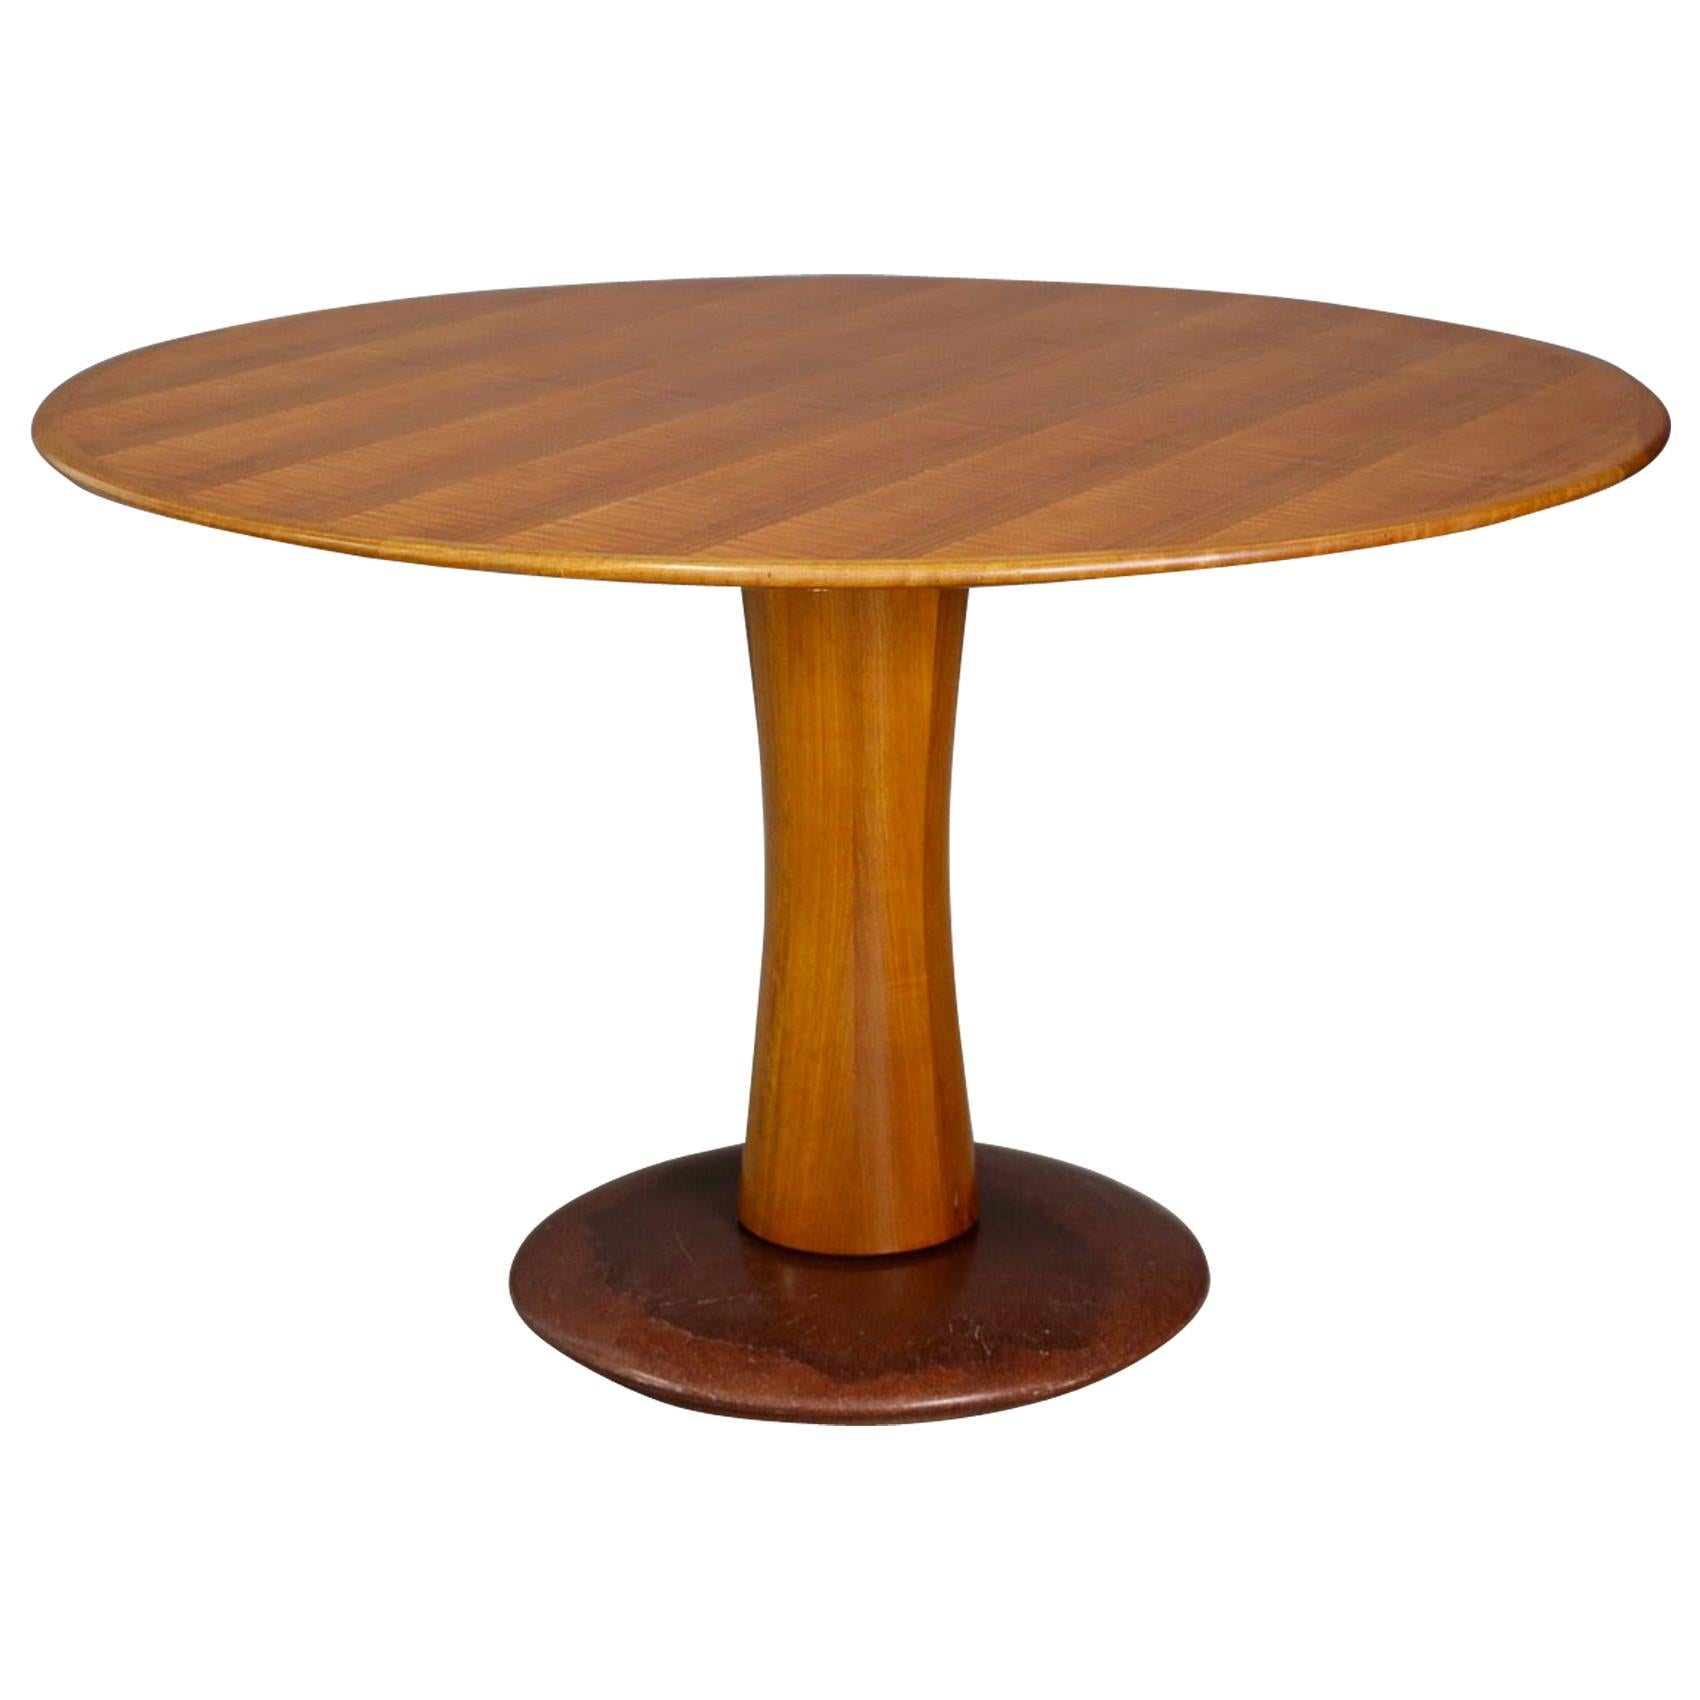 Paolo Buffa Table Midcentury in Marble and Wood, from 1950s